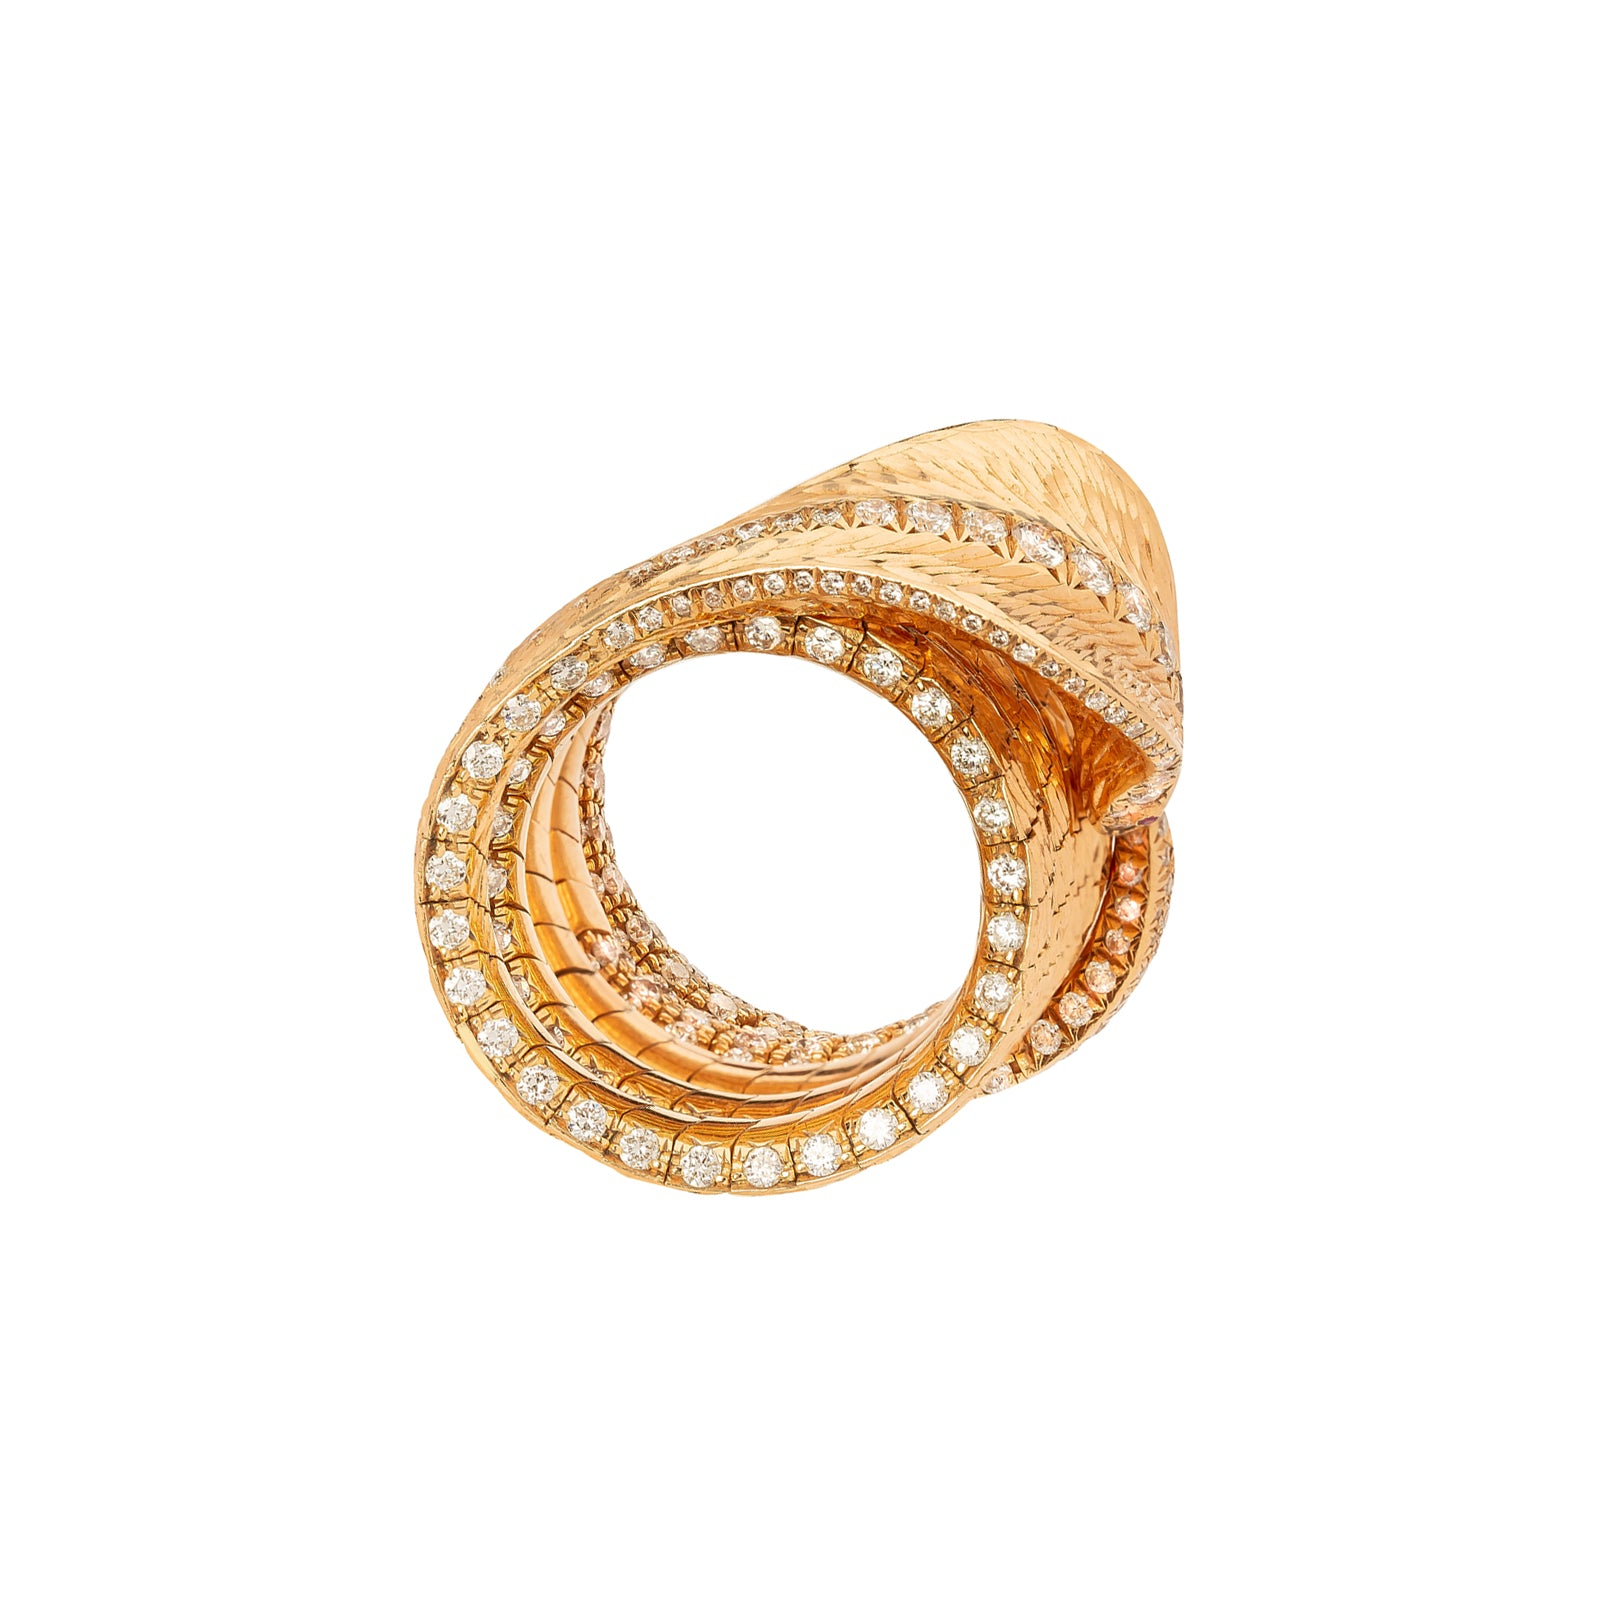 Arunashi Cobra Ring - White Diamond - Rings - Broken English Jewelry